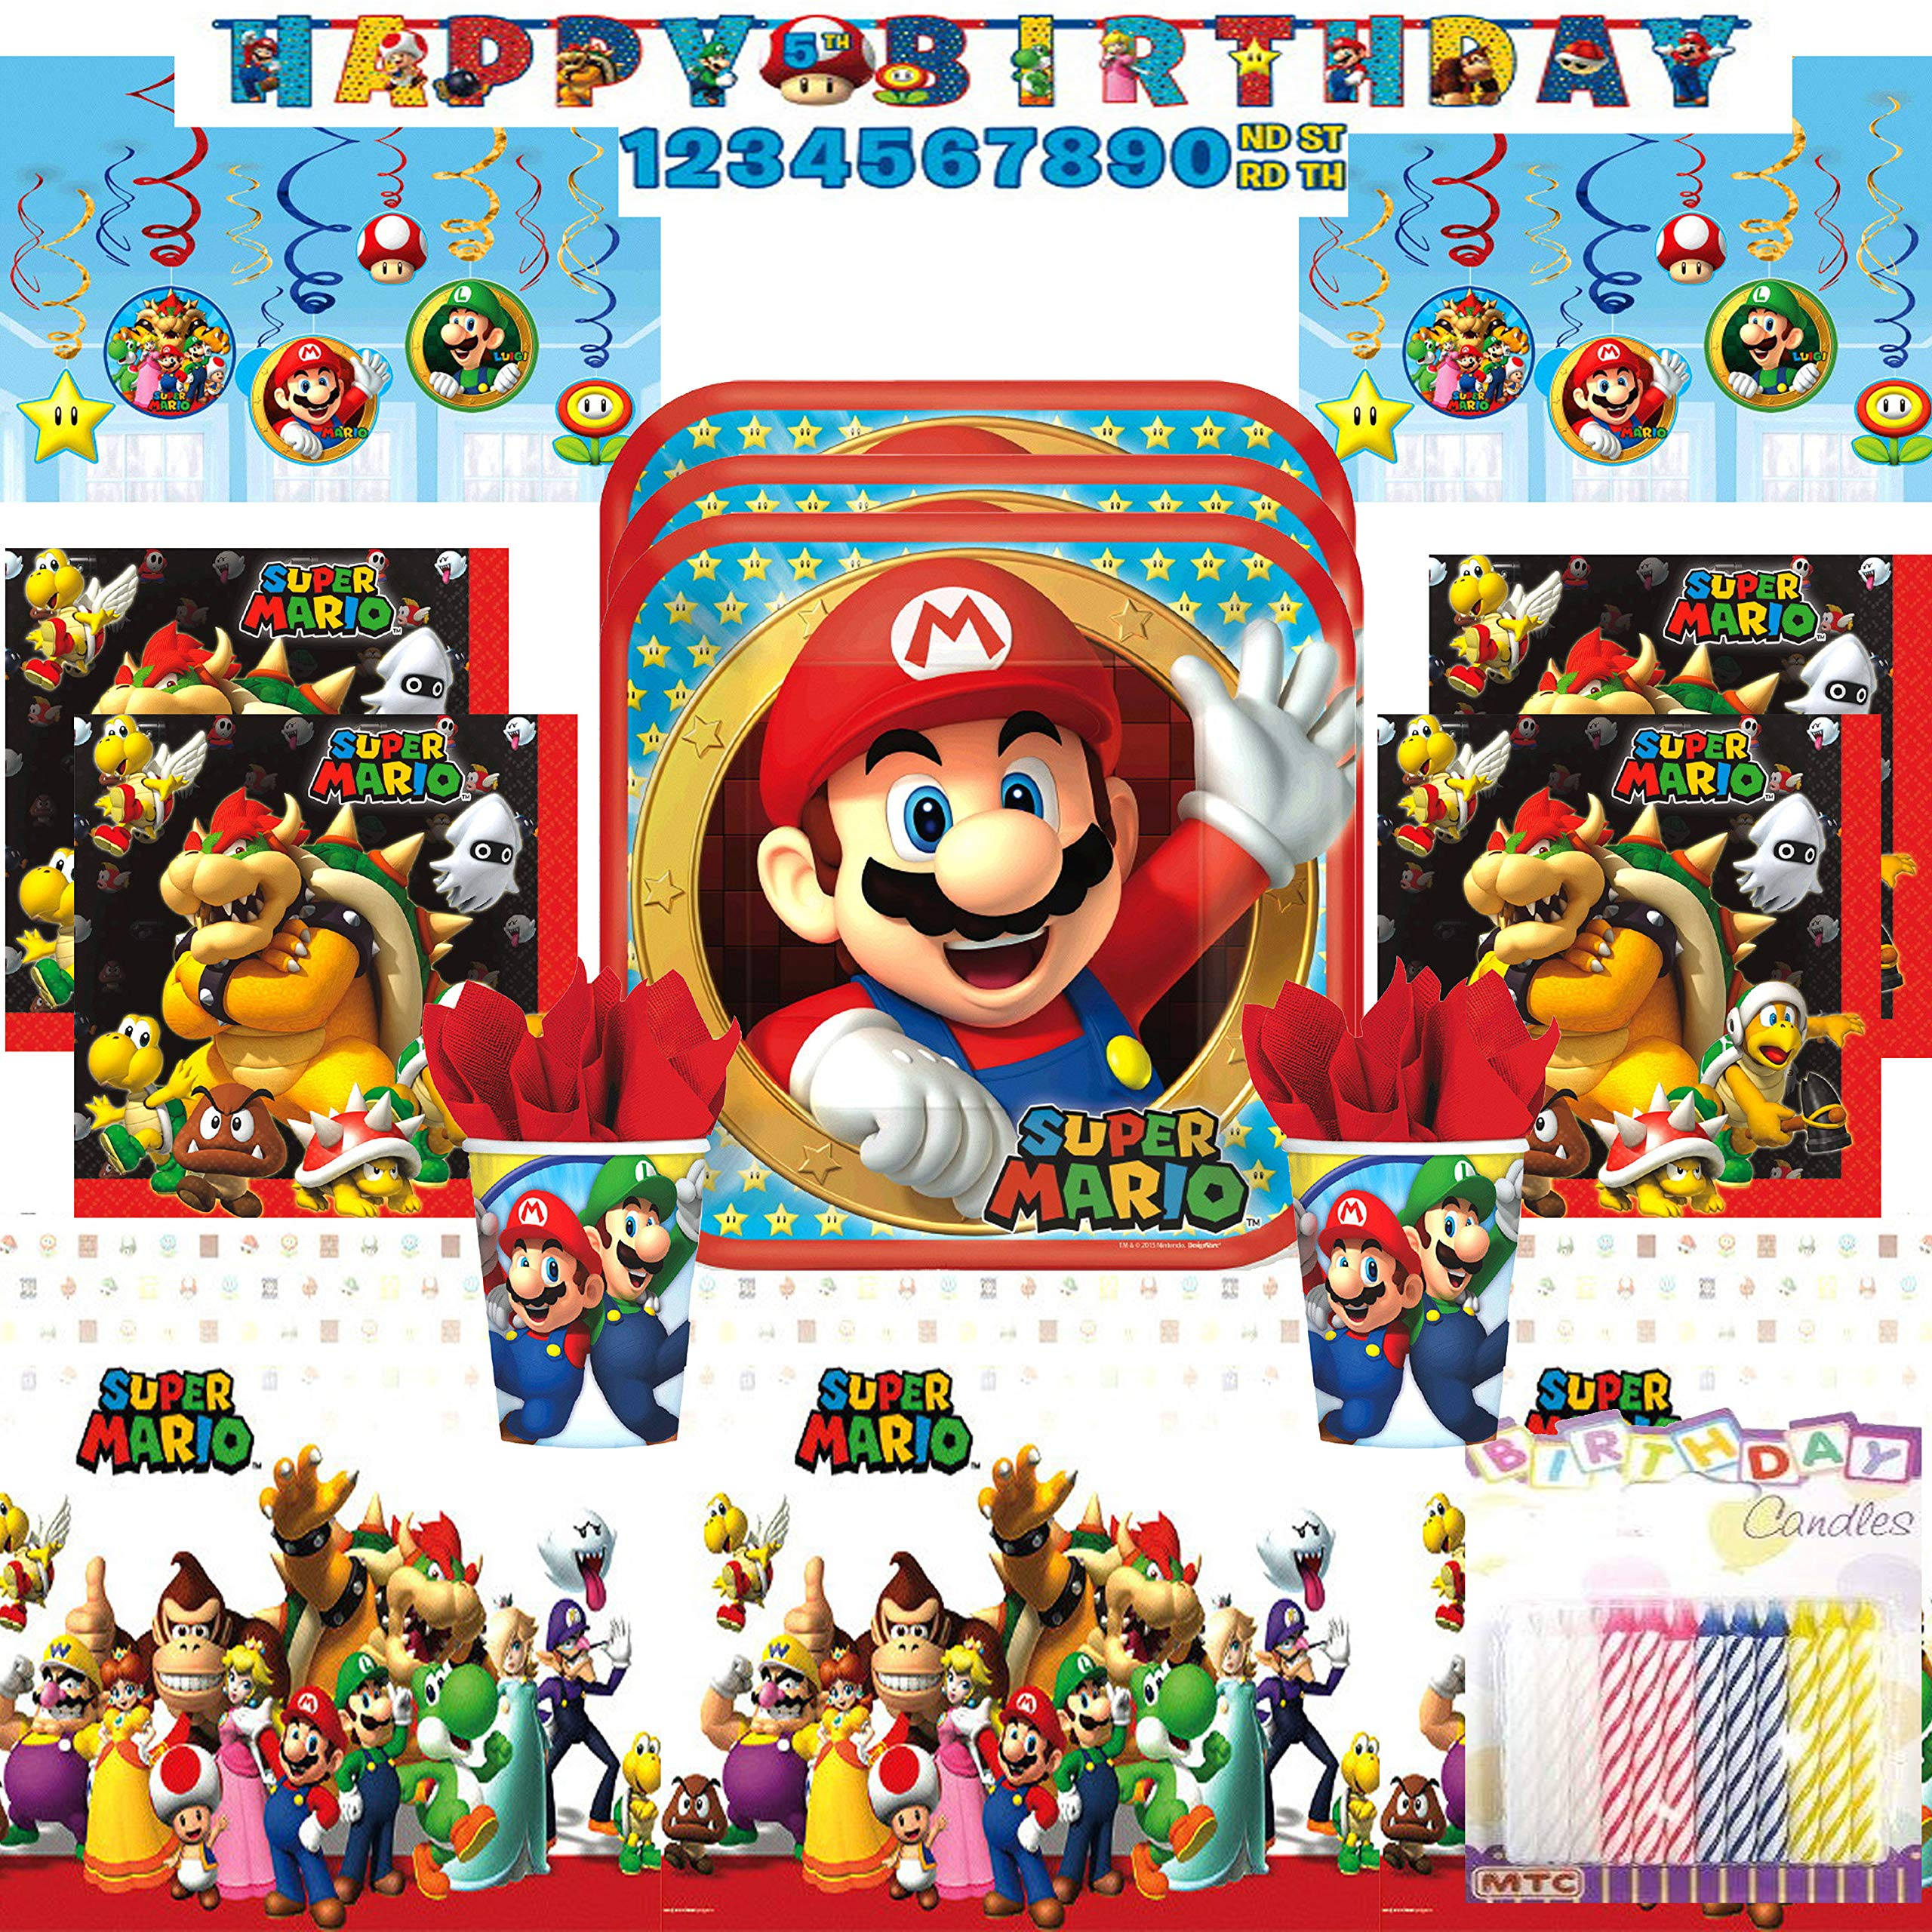 Super Mario Bros Ultimate Birthday Party Supply Pack Serves 16: Dinner Plates, Luncheon Napkins, Cups, Table Cover, Swirl Decorations, and Birthday Banner with Birthday Candles (ULTIMATE PARTY BUNDLE for 16) by LLILYKAI VALUE BUNDLES